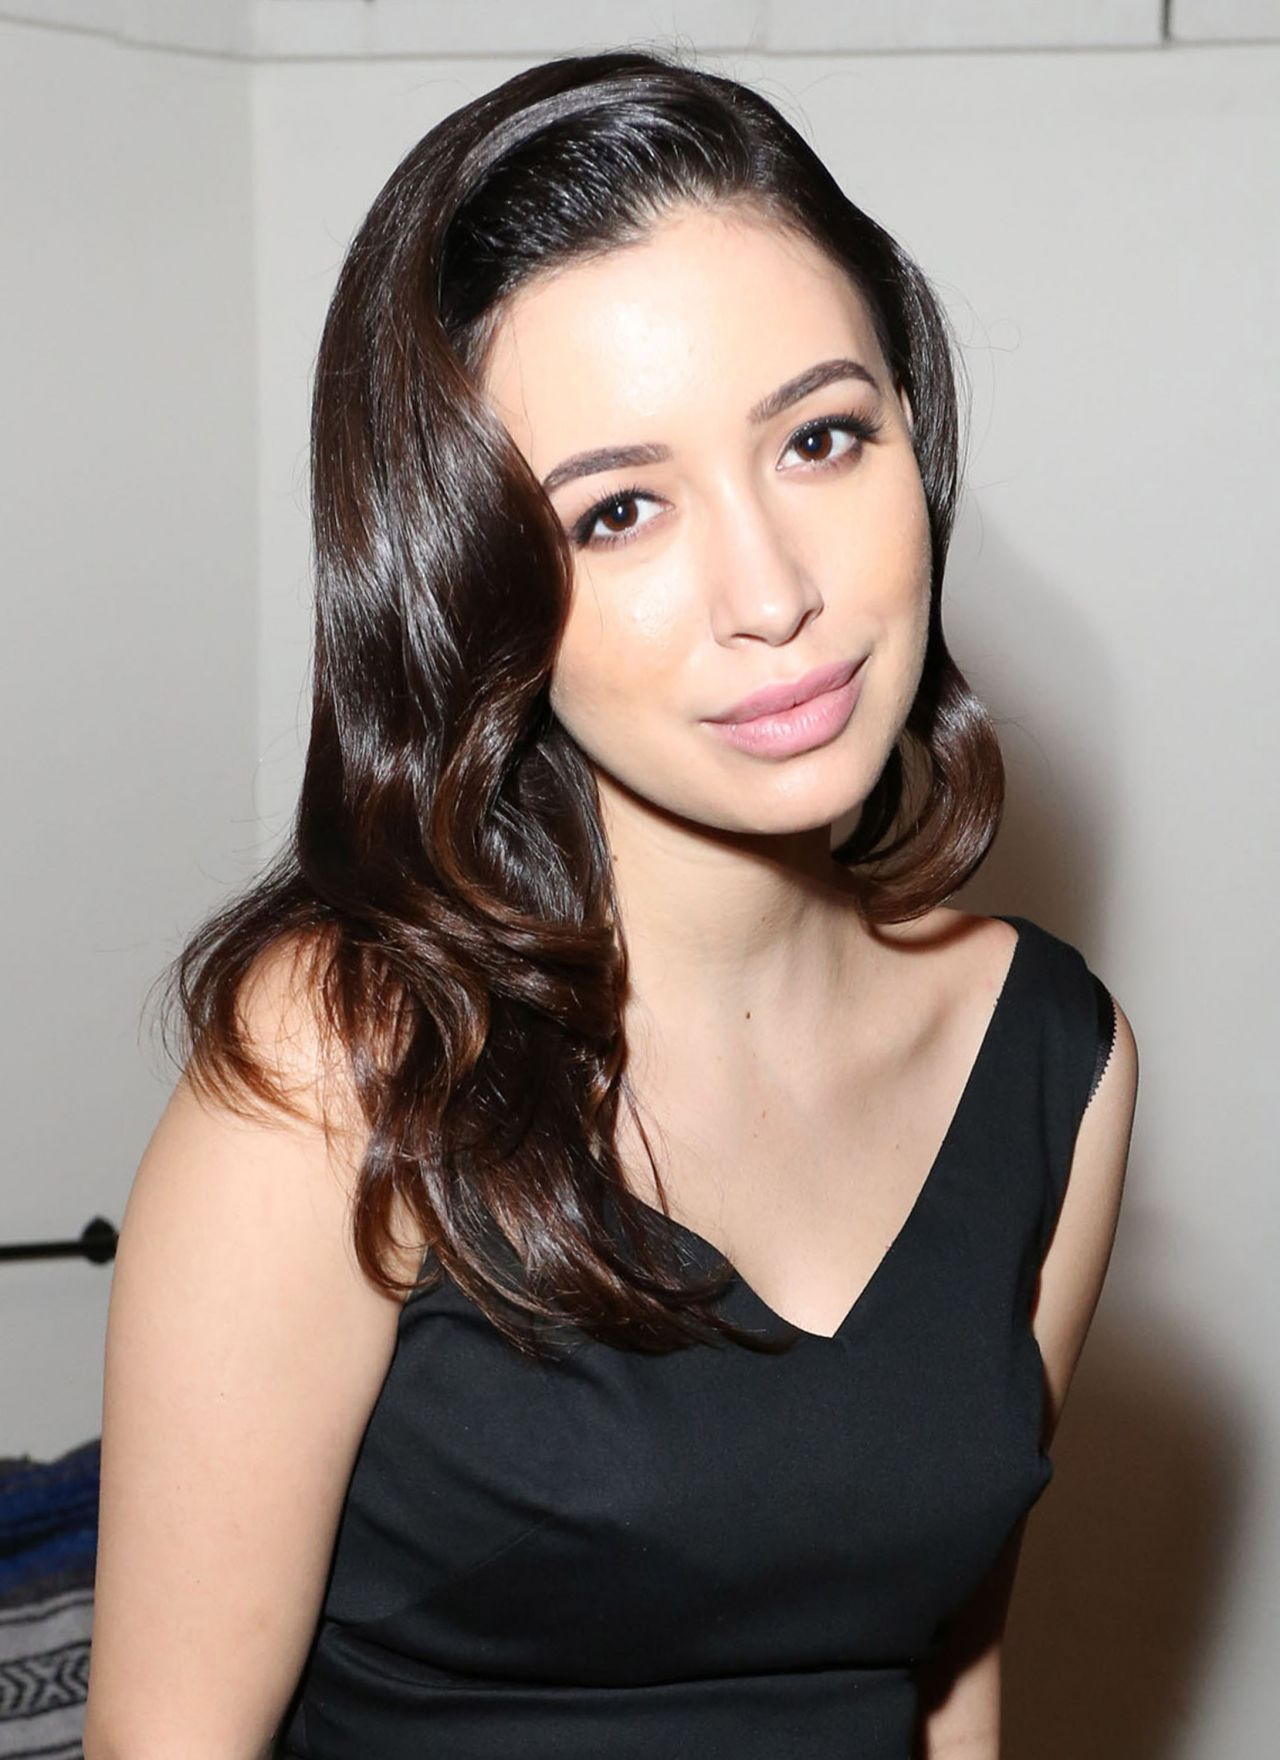 Christian Serratos earned a  million dollar salary, leaving the net worth at 2 million in 2017